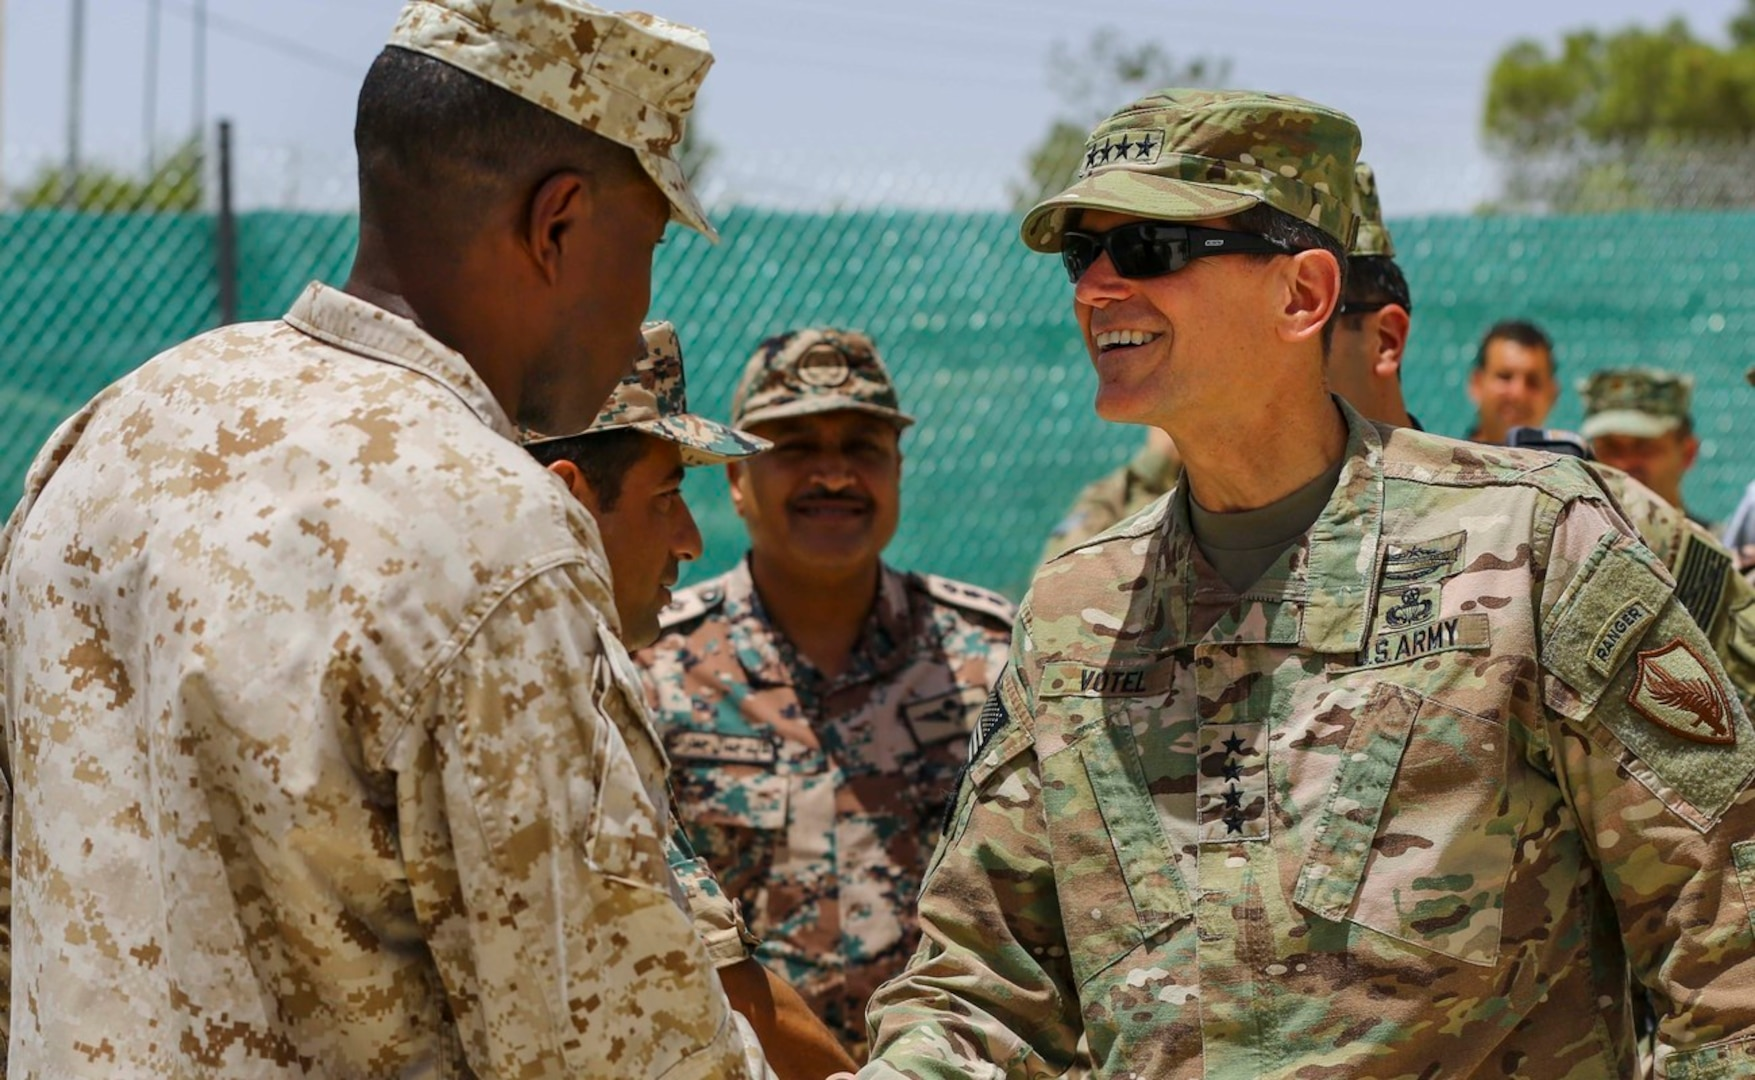 U.S. Army Gen. Joseph Votel Commander of U.S. Central Command, meets with U.S. Marine Sgt. Maj. Clifford Wiggins, 5th Marine Expeditionary Brigade, and members of the Jordanian Armed Forces during Exercise Eager Lion 16 near Amman, Jordan on May 22, 2016.